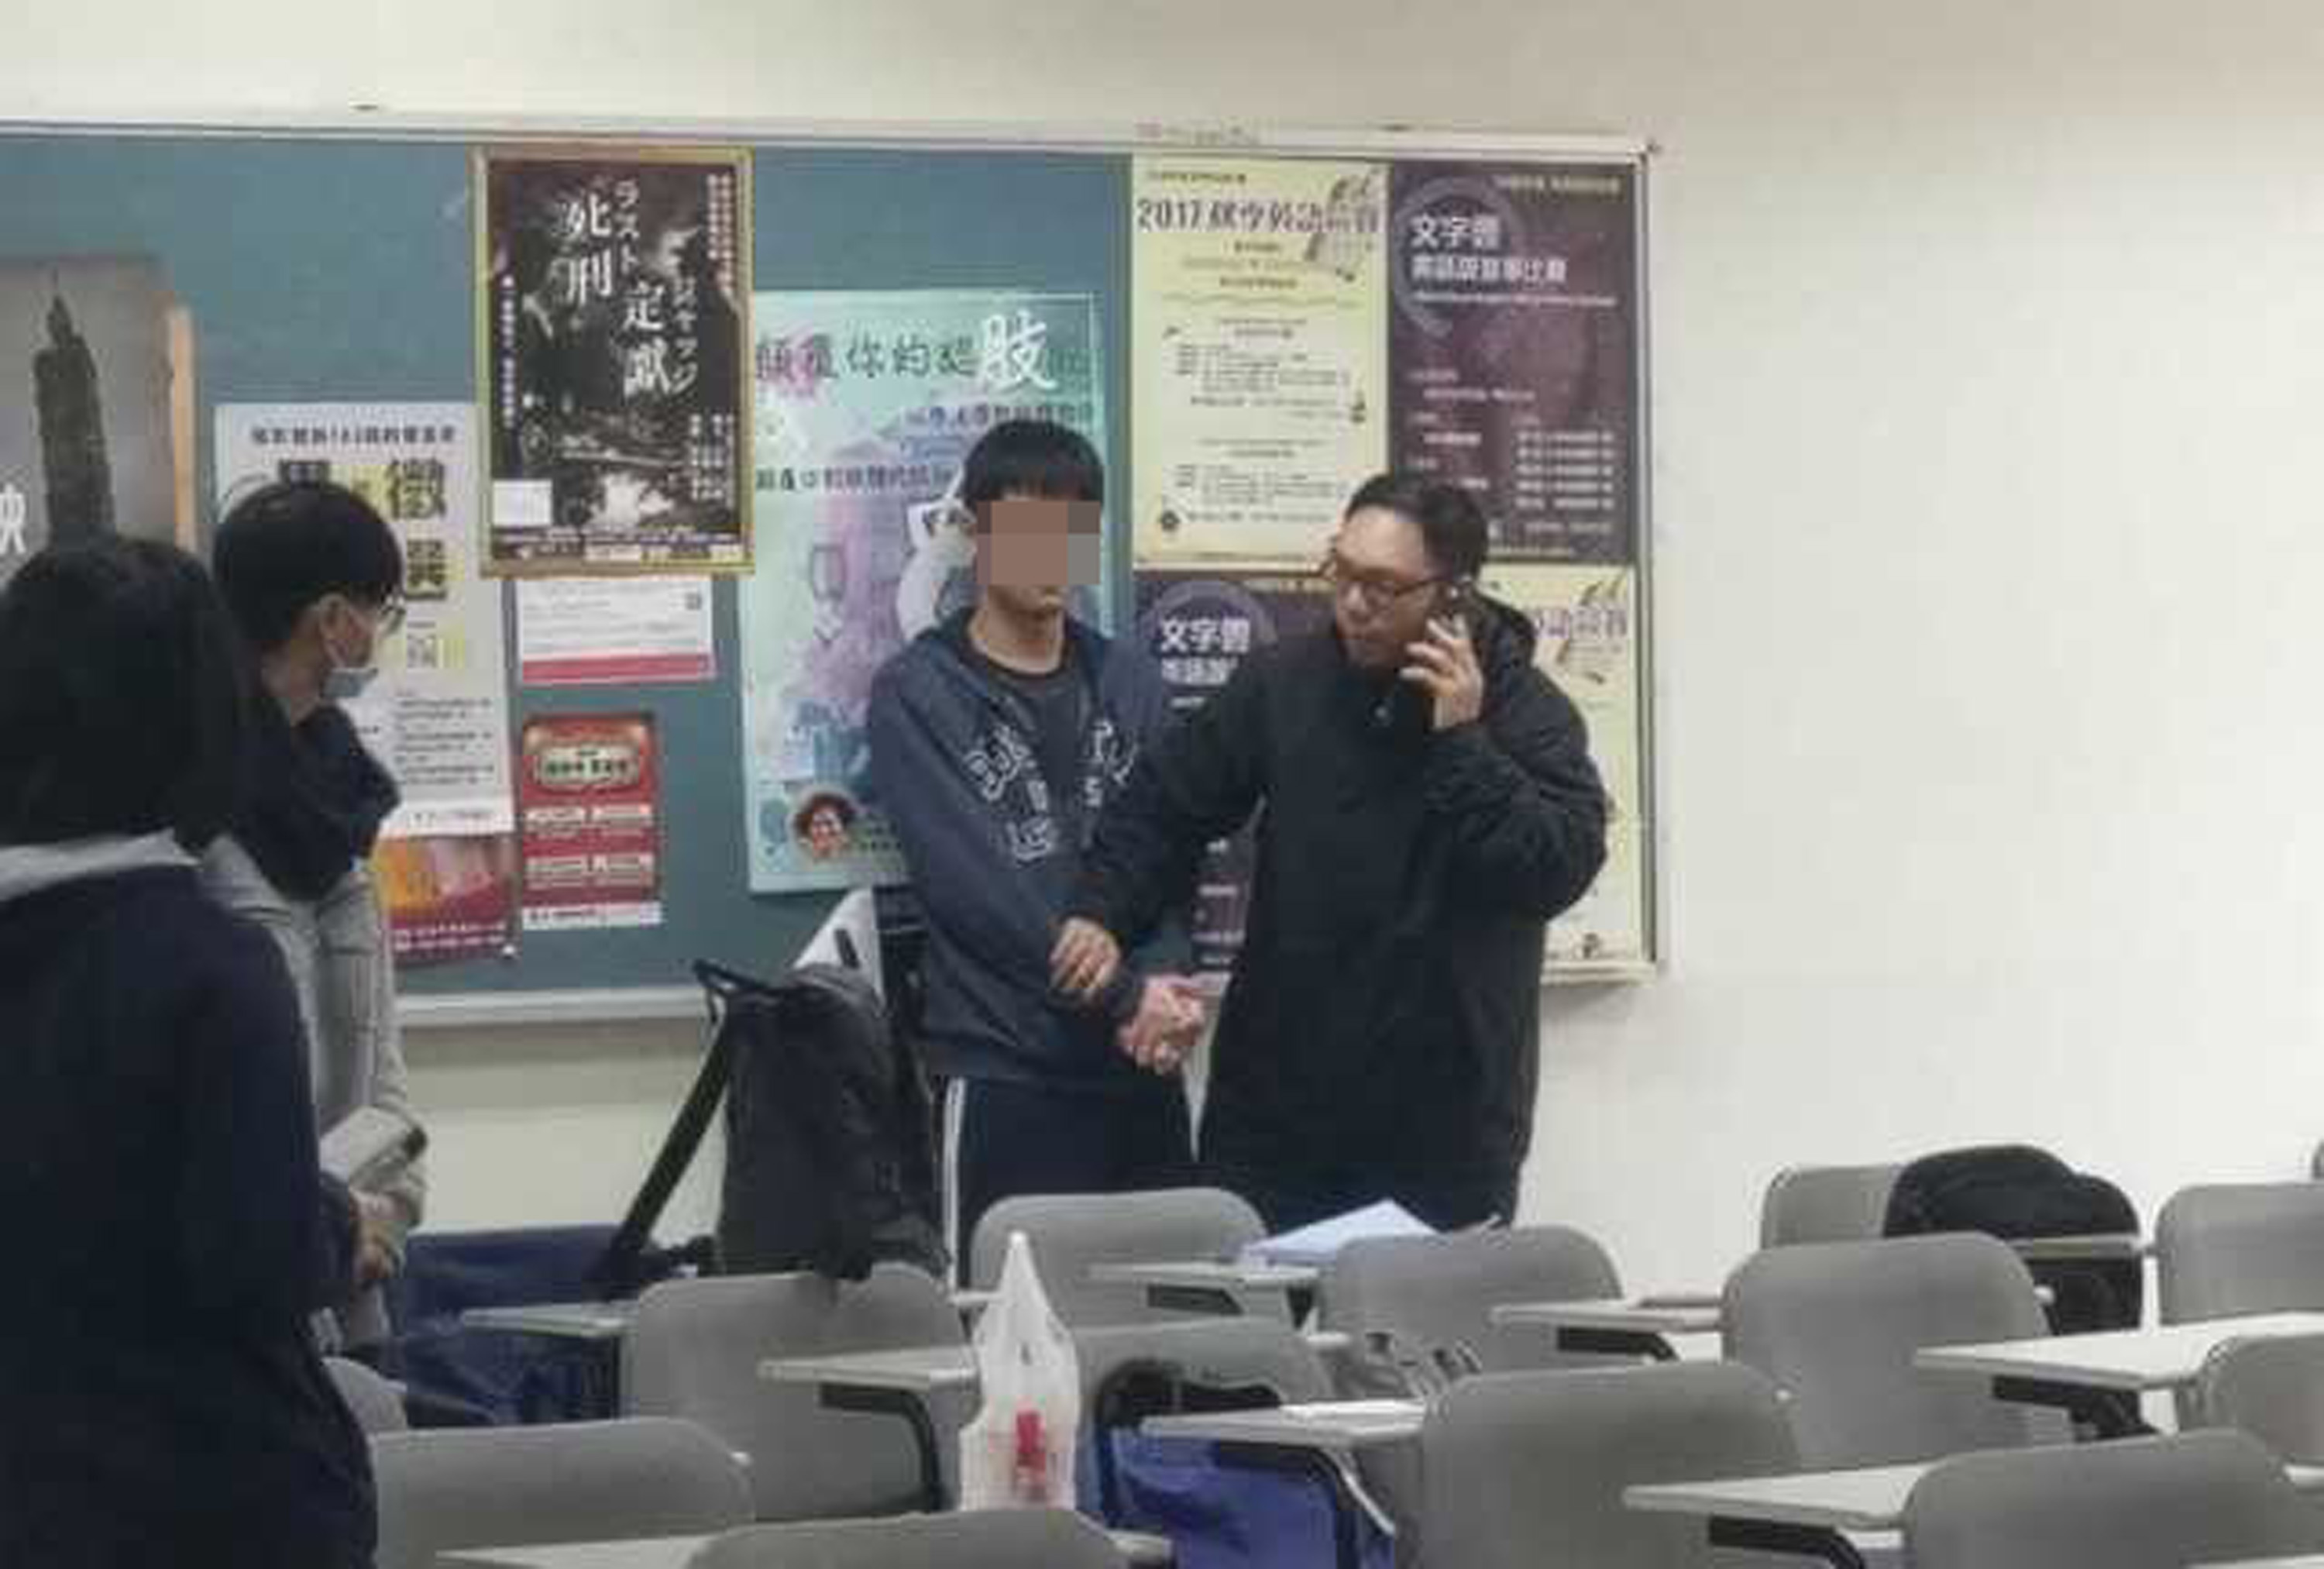 Chen being restrained by teachers after assault.